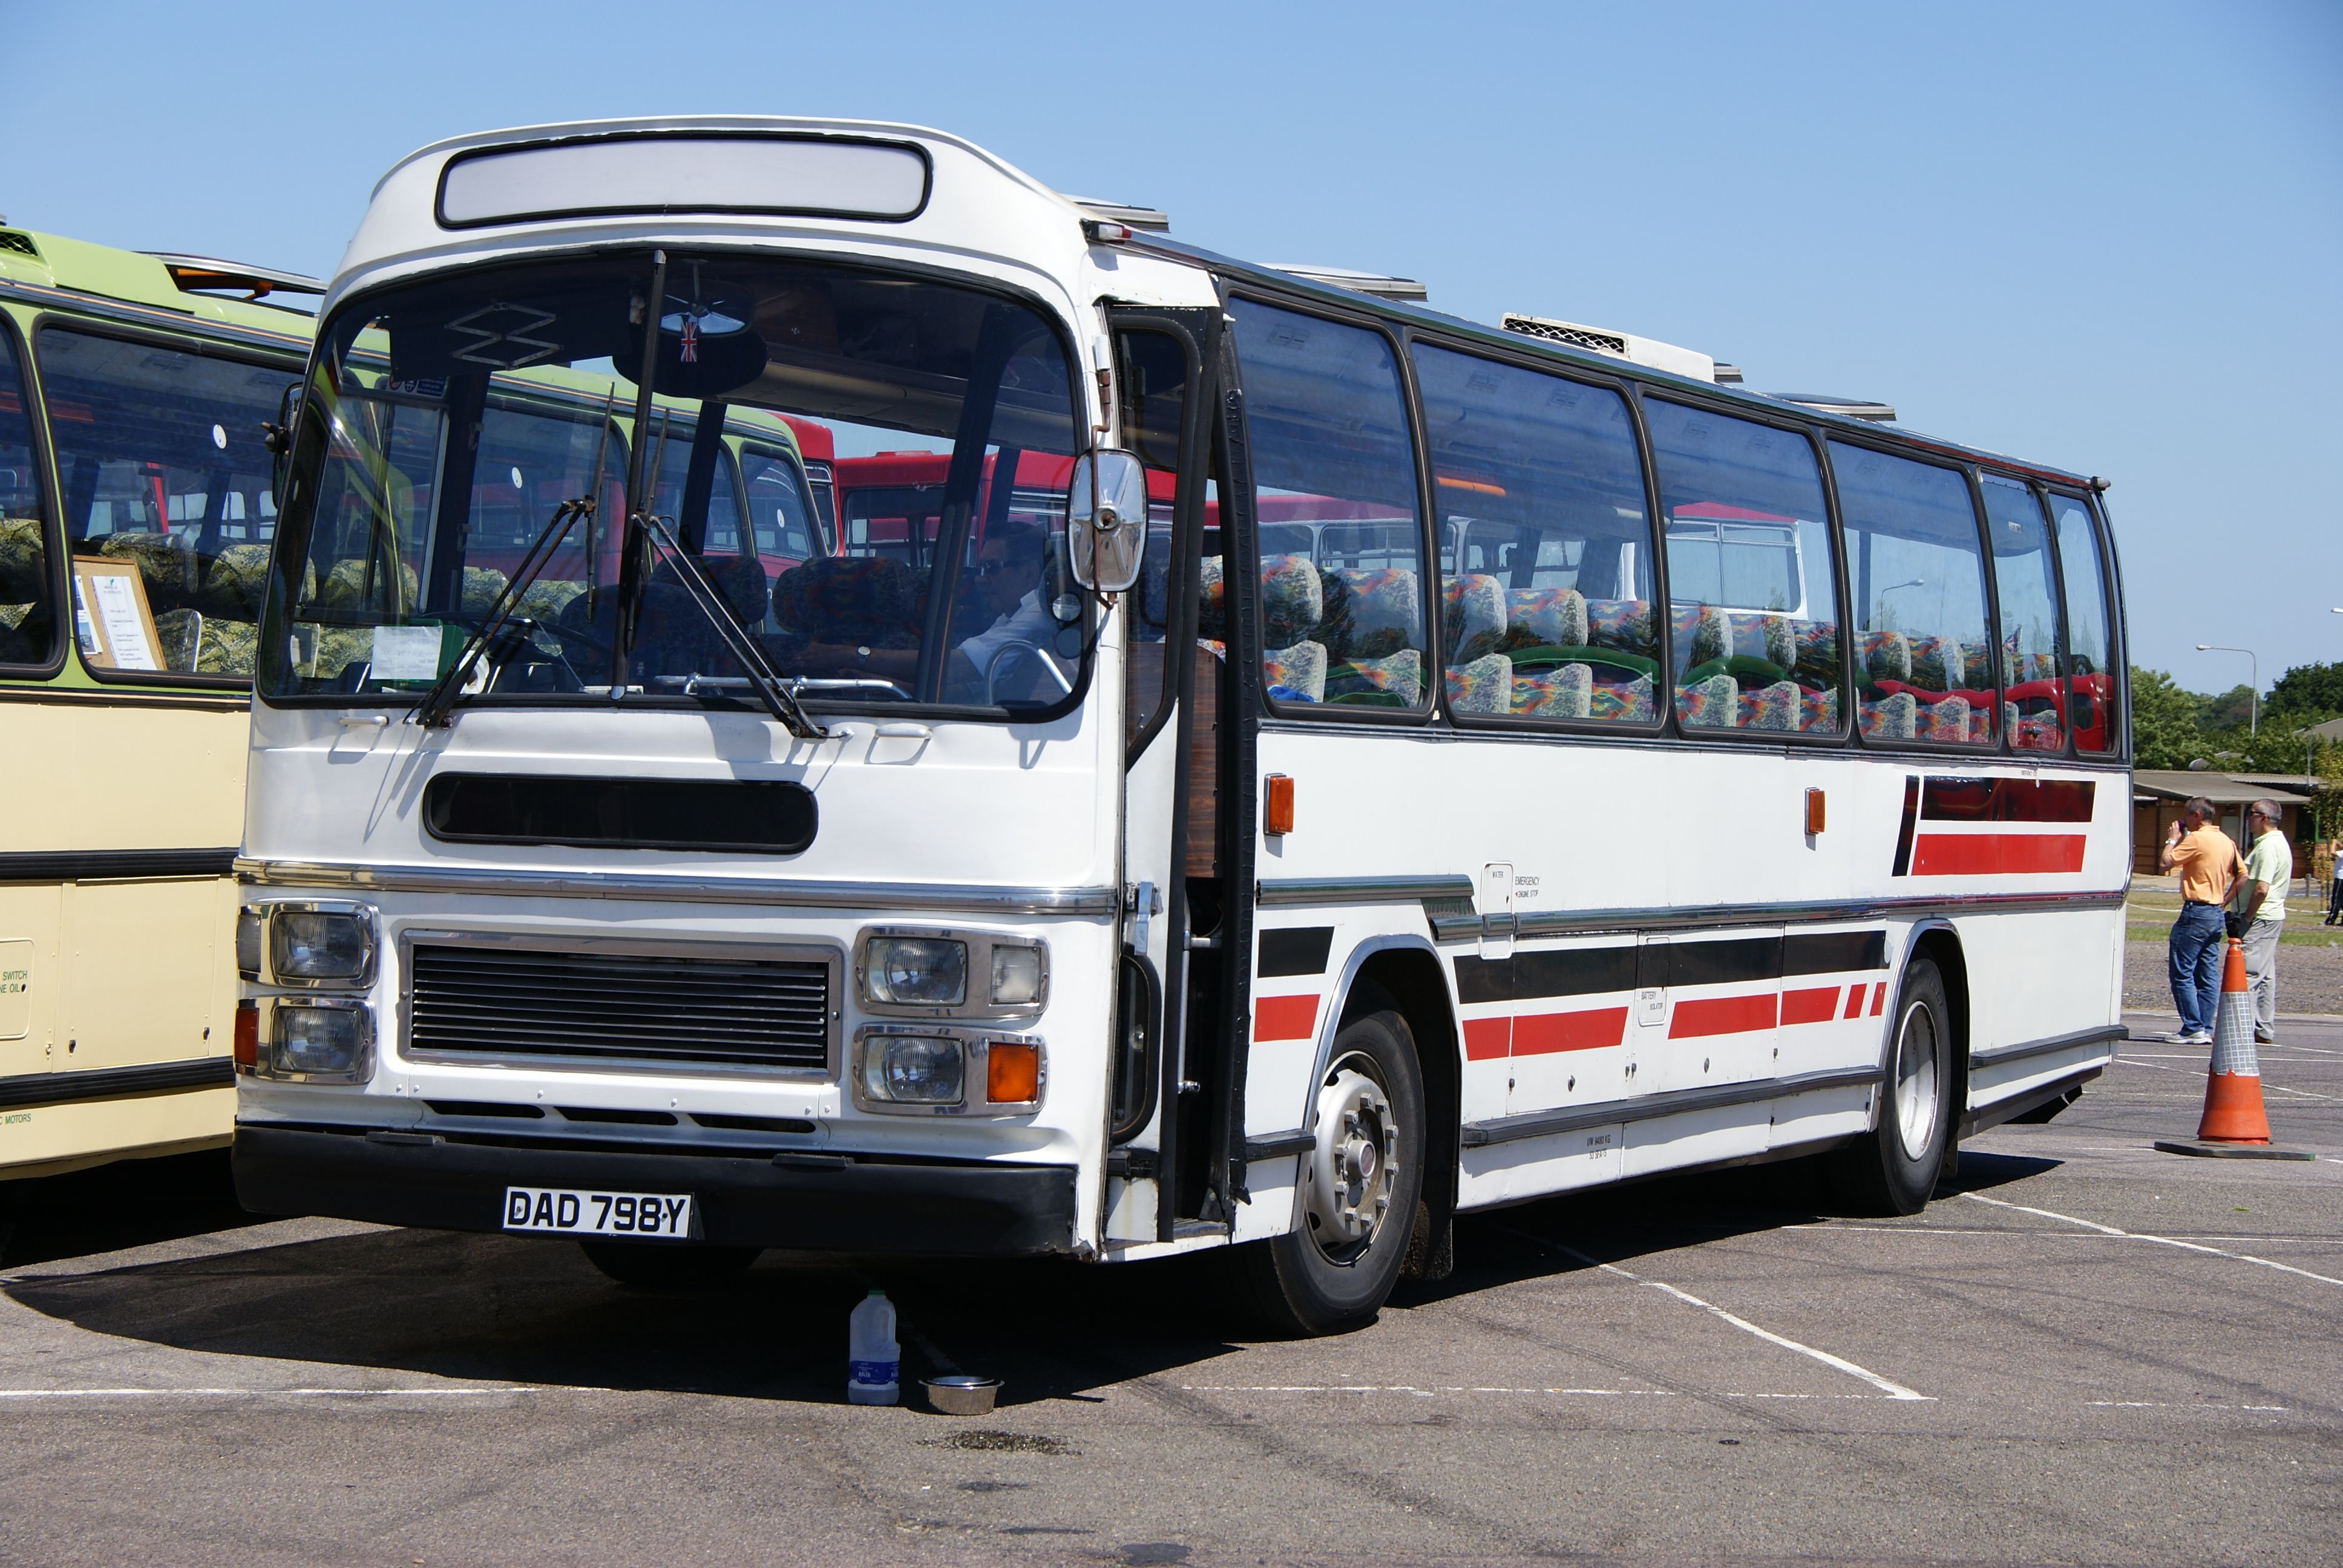 File:Leyland Leopard (DAD 798Y), 2010 North Weald bus ...